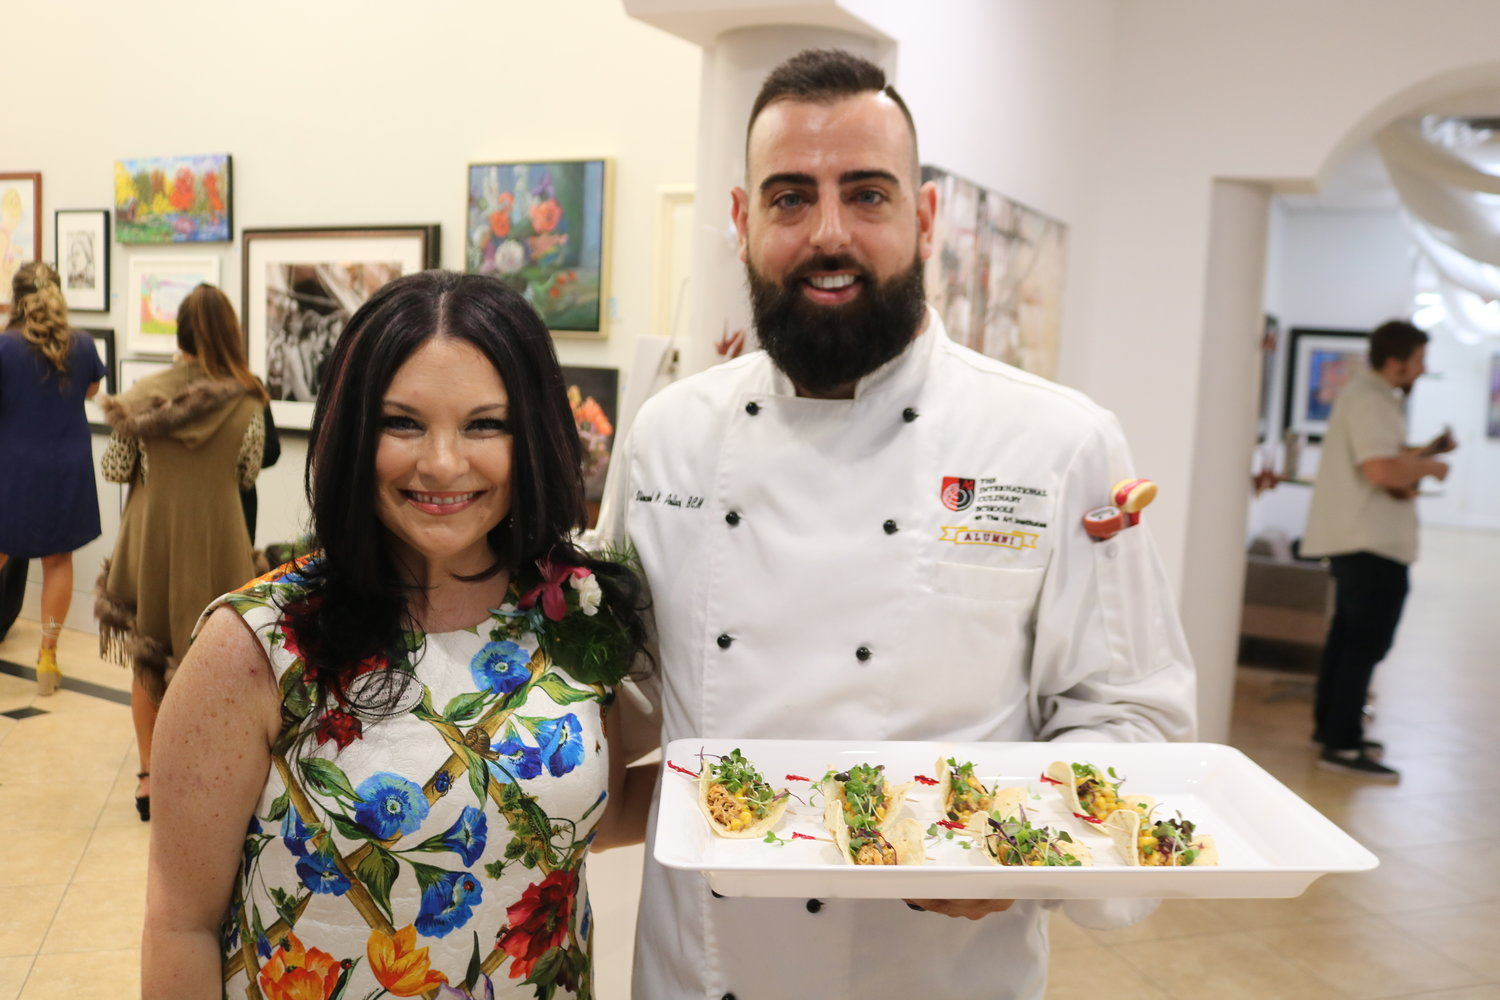 Donna Guzzo, executive director of the Cultural Center at Ponte Vedra Beach, and Vincent Pollaci of Weenie Panini gather at Art Tapas on March 1 at the Center.